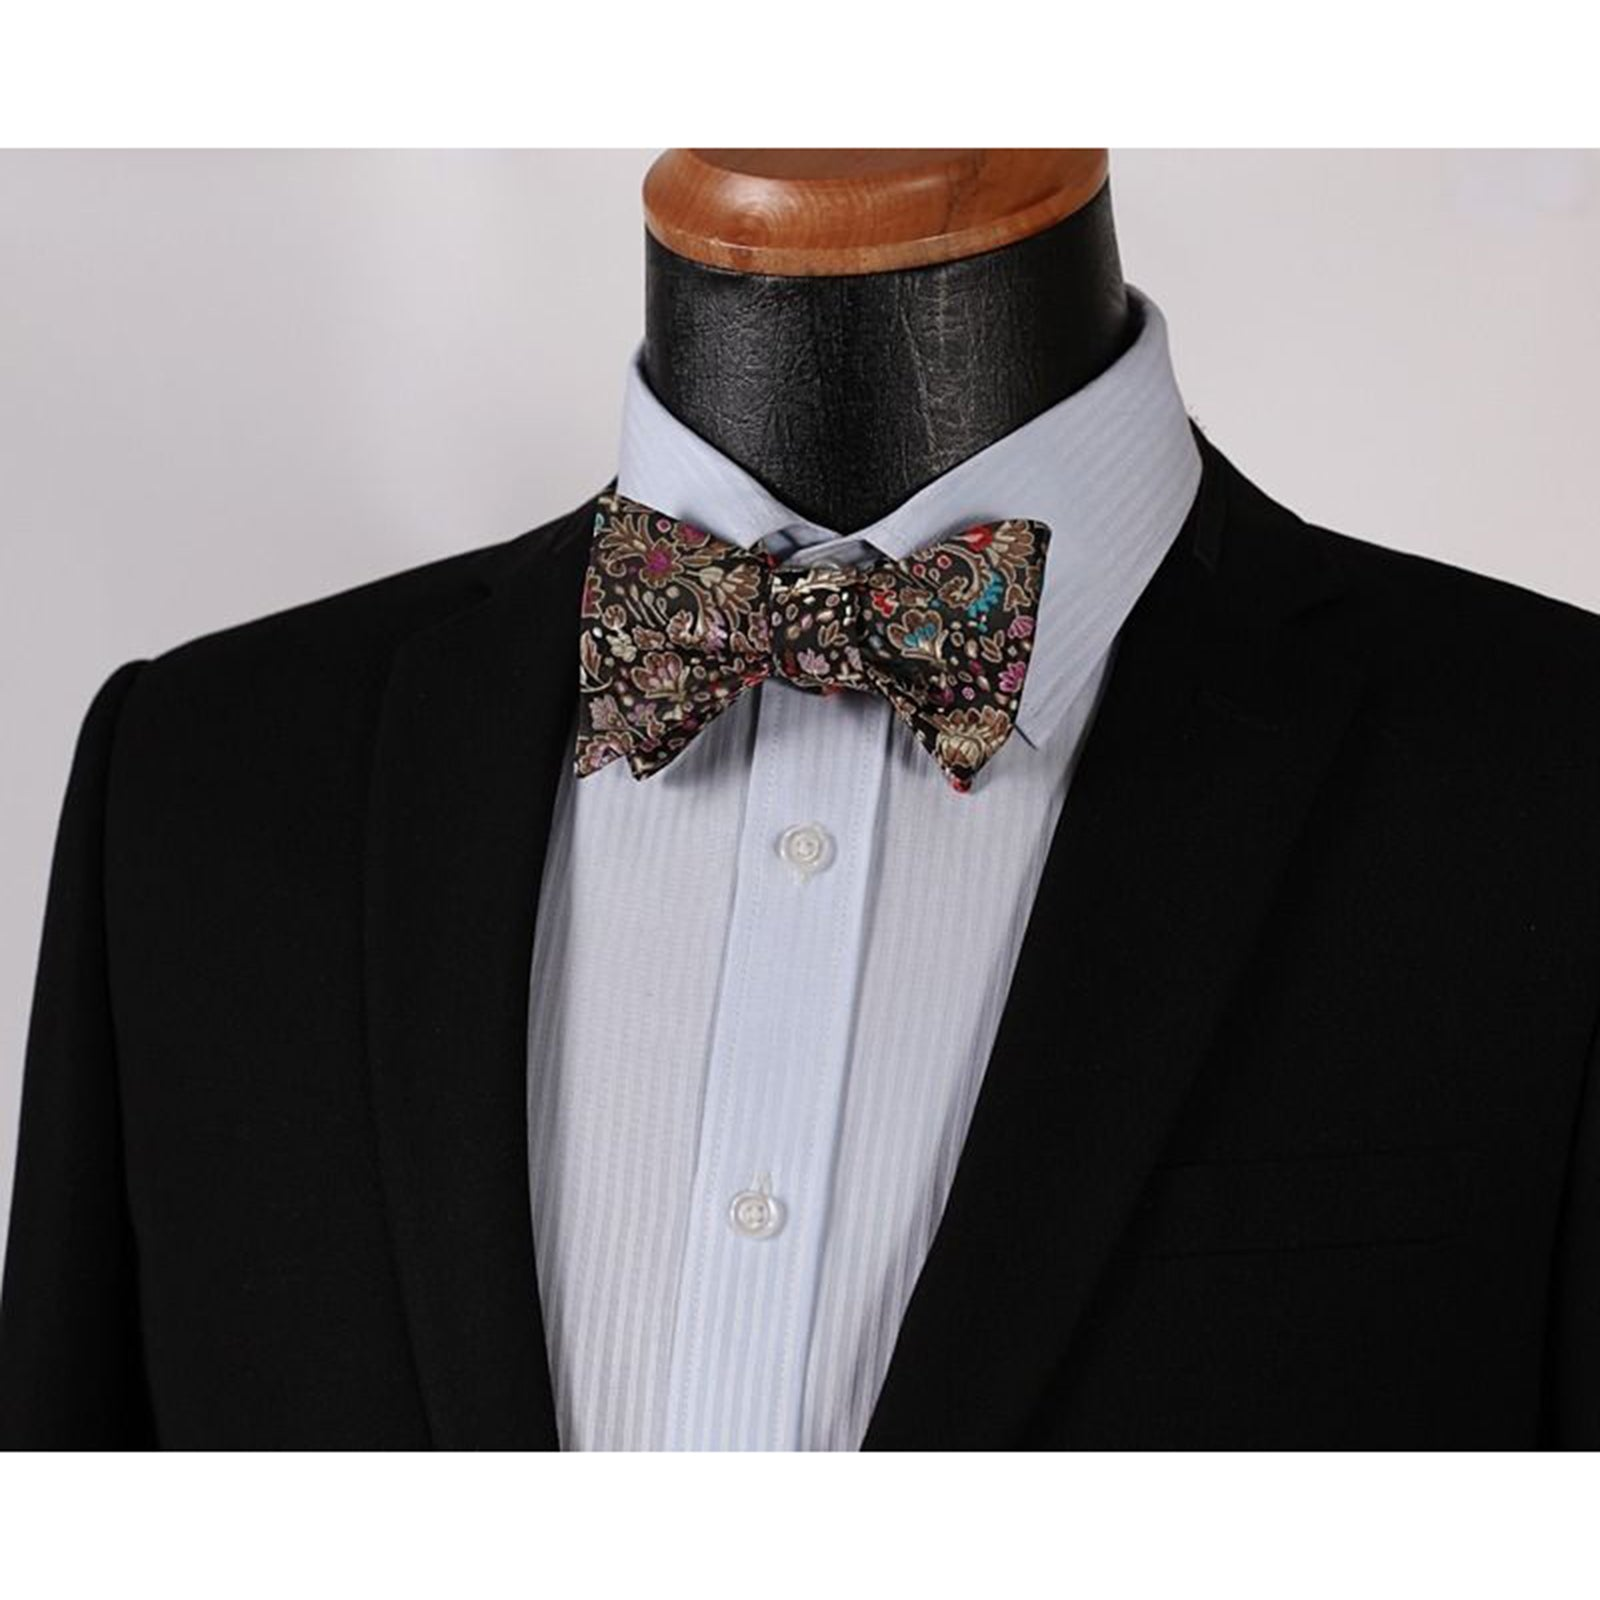 Men's Silk Self Bow Tie Handkerchief - Amedeo Exclusive